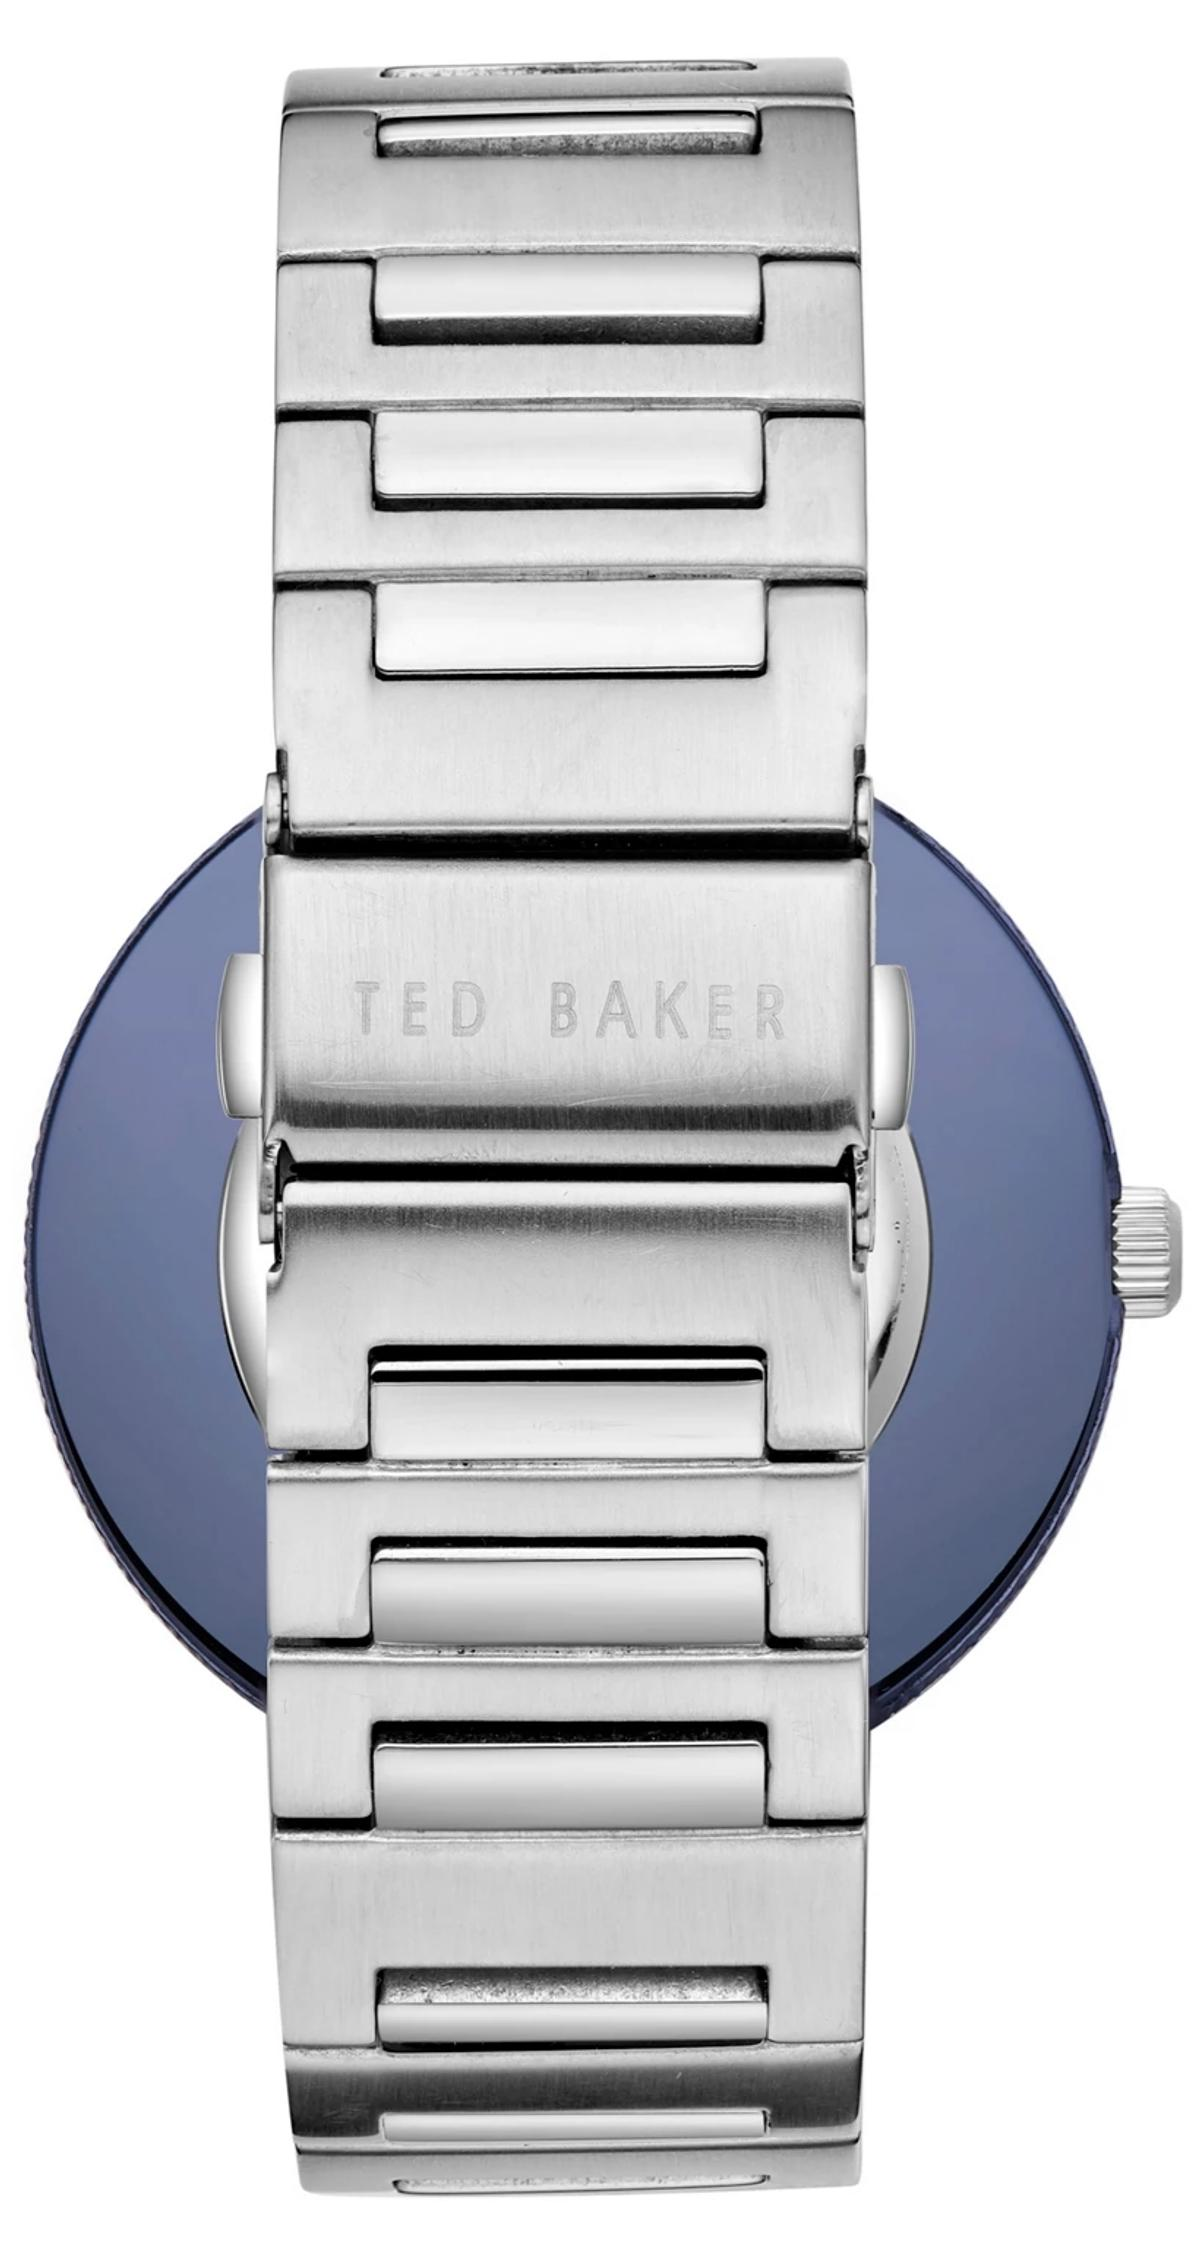 Ted Baker Mens Josh Stainless Steel Bracelet Watch - Unwanted Gift **Great Present**  Features: Stainless Steel Bracelet Mineral Analogue Round 42mm x 10mm 50m water resistant Ted Baker presentation box (TE50011009) Comes with manuals and full box  Will make a great gift if you want to give it someone for B'Day, Anniversary or Male family member.  *Genuine buyers and offers welcome, quick sale*